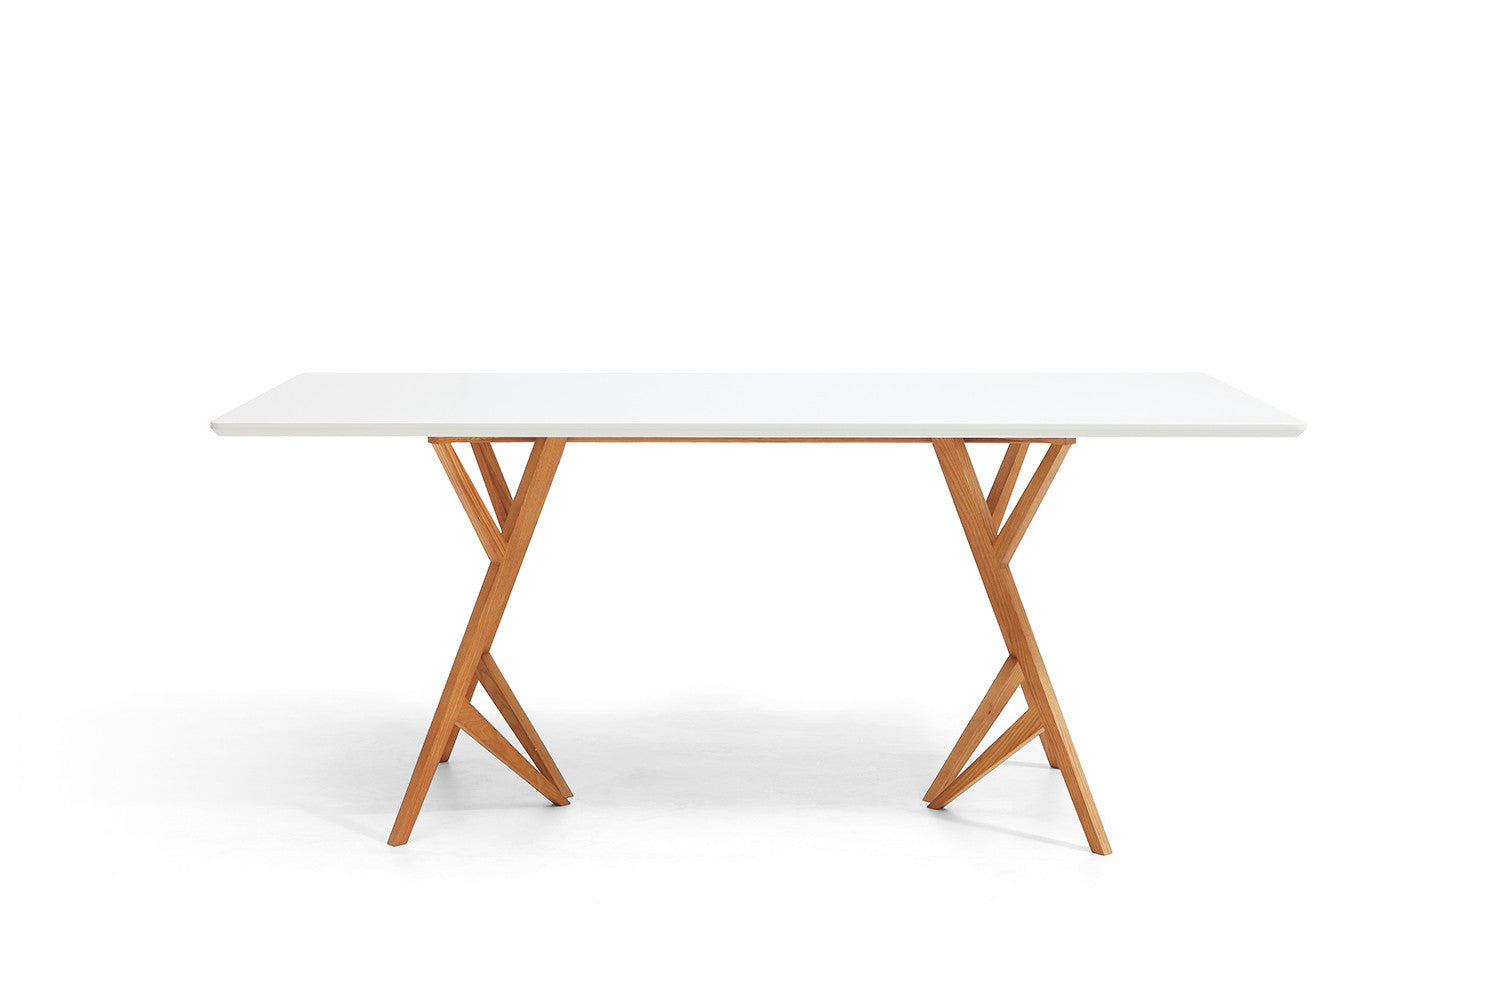 Table de salle manger design scandinave vispa dewarens for Table design blanche